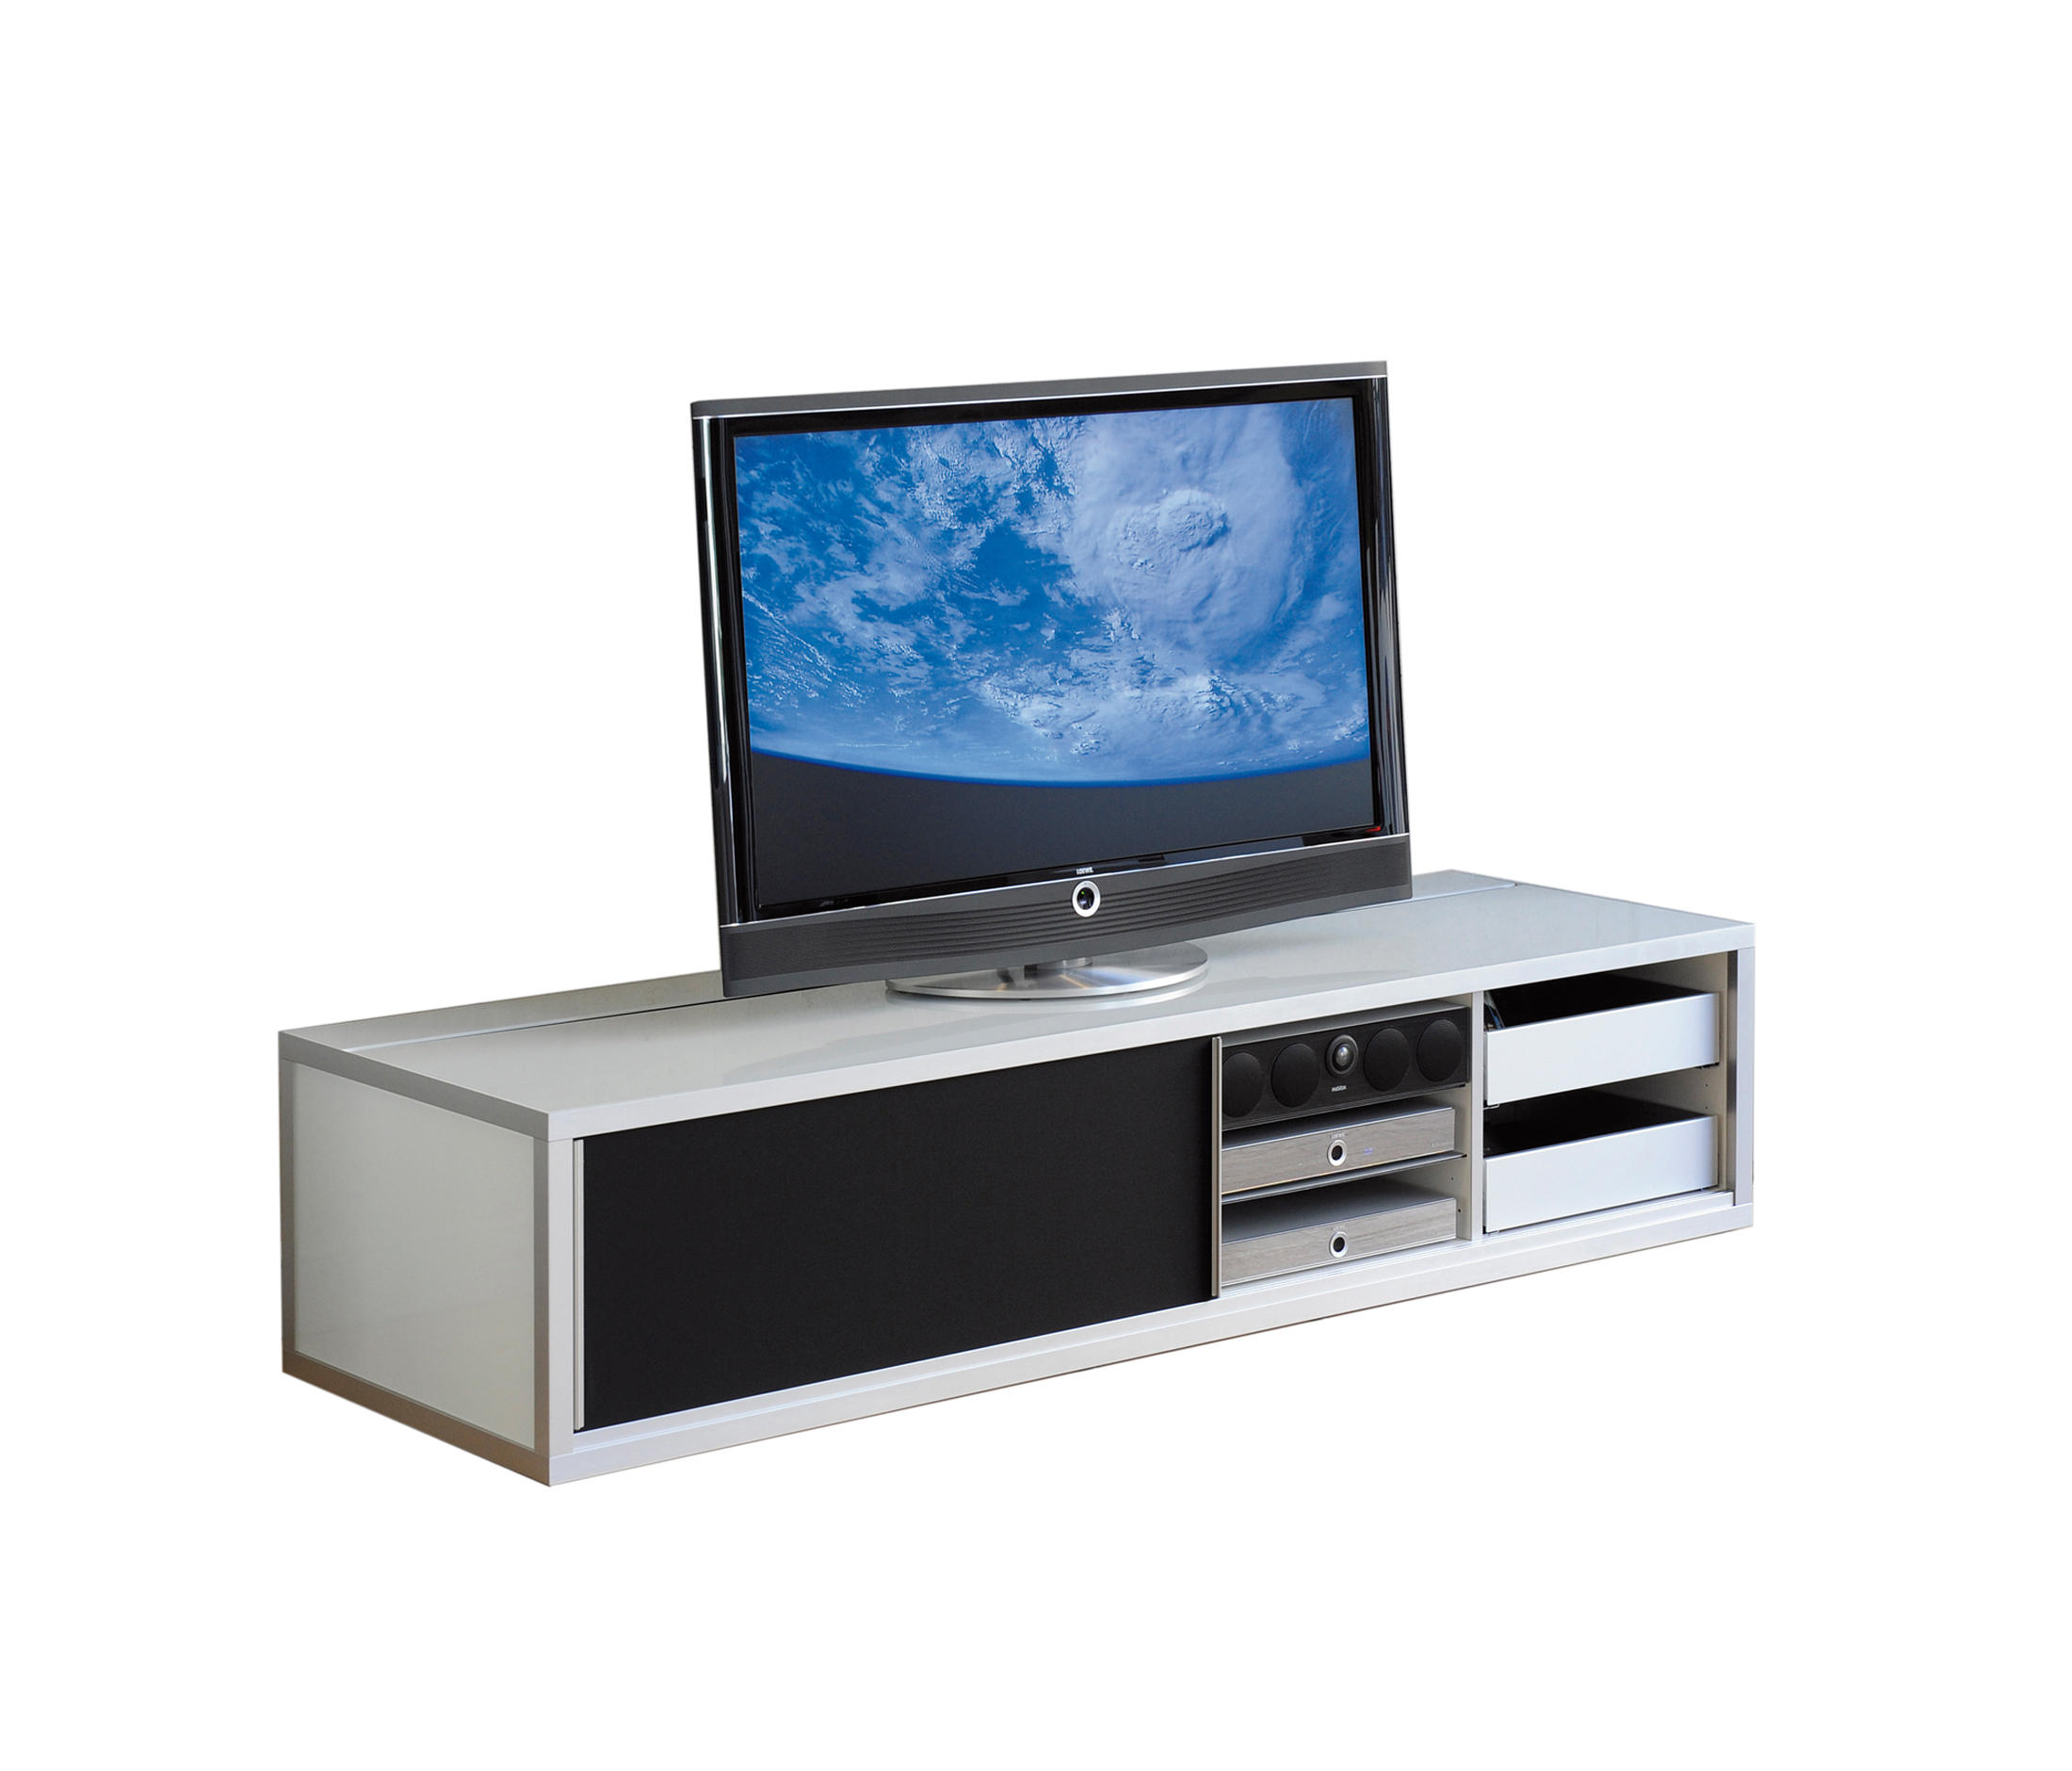 Mediamöbel MediamÖbel Multimedia Sideboards From Chamäleon Design